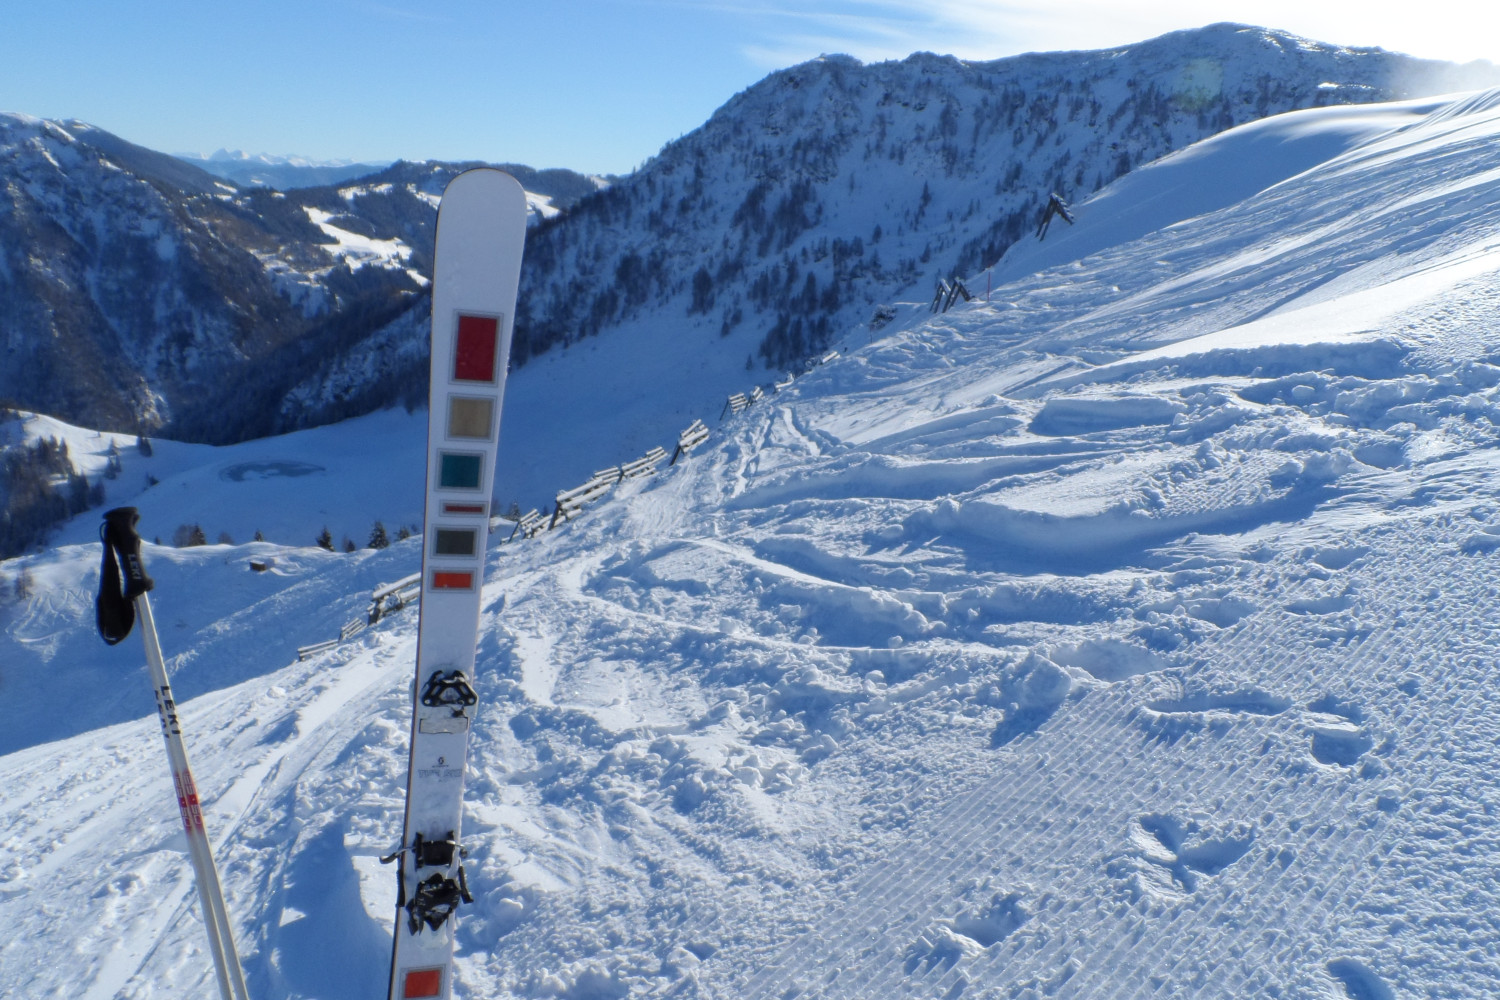 Twin tip skis, ideal when trying to ski backwards